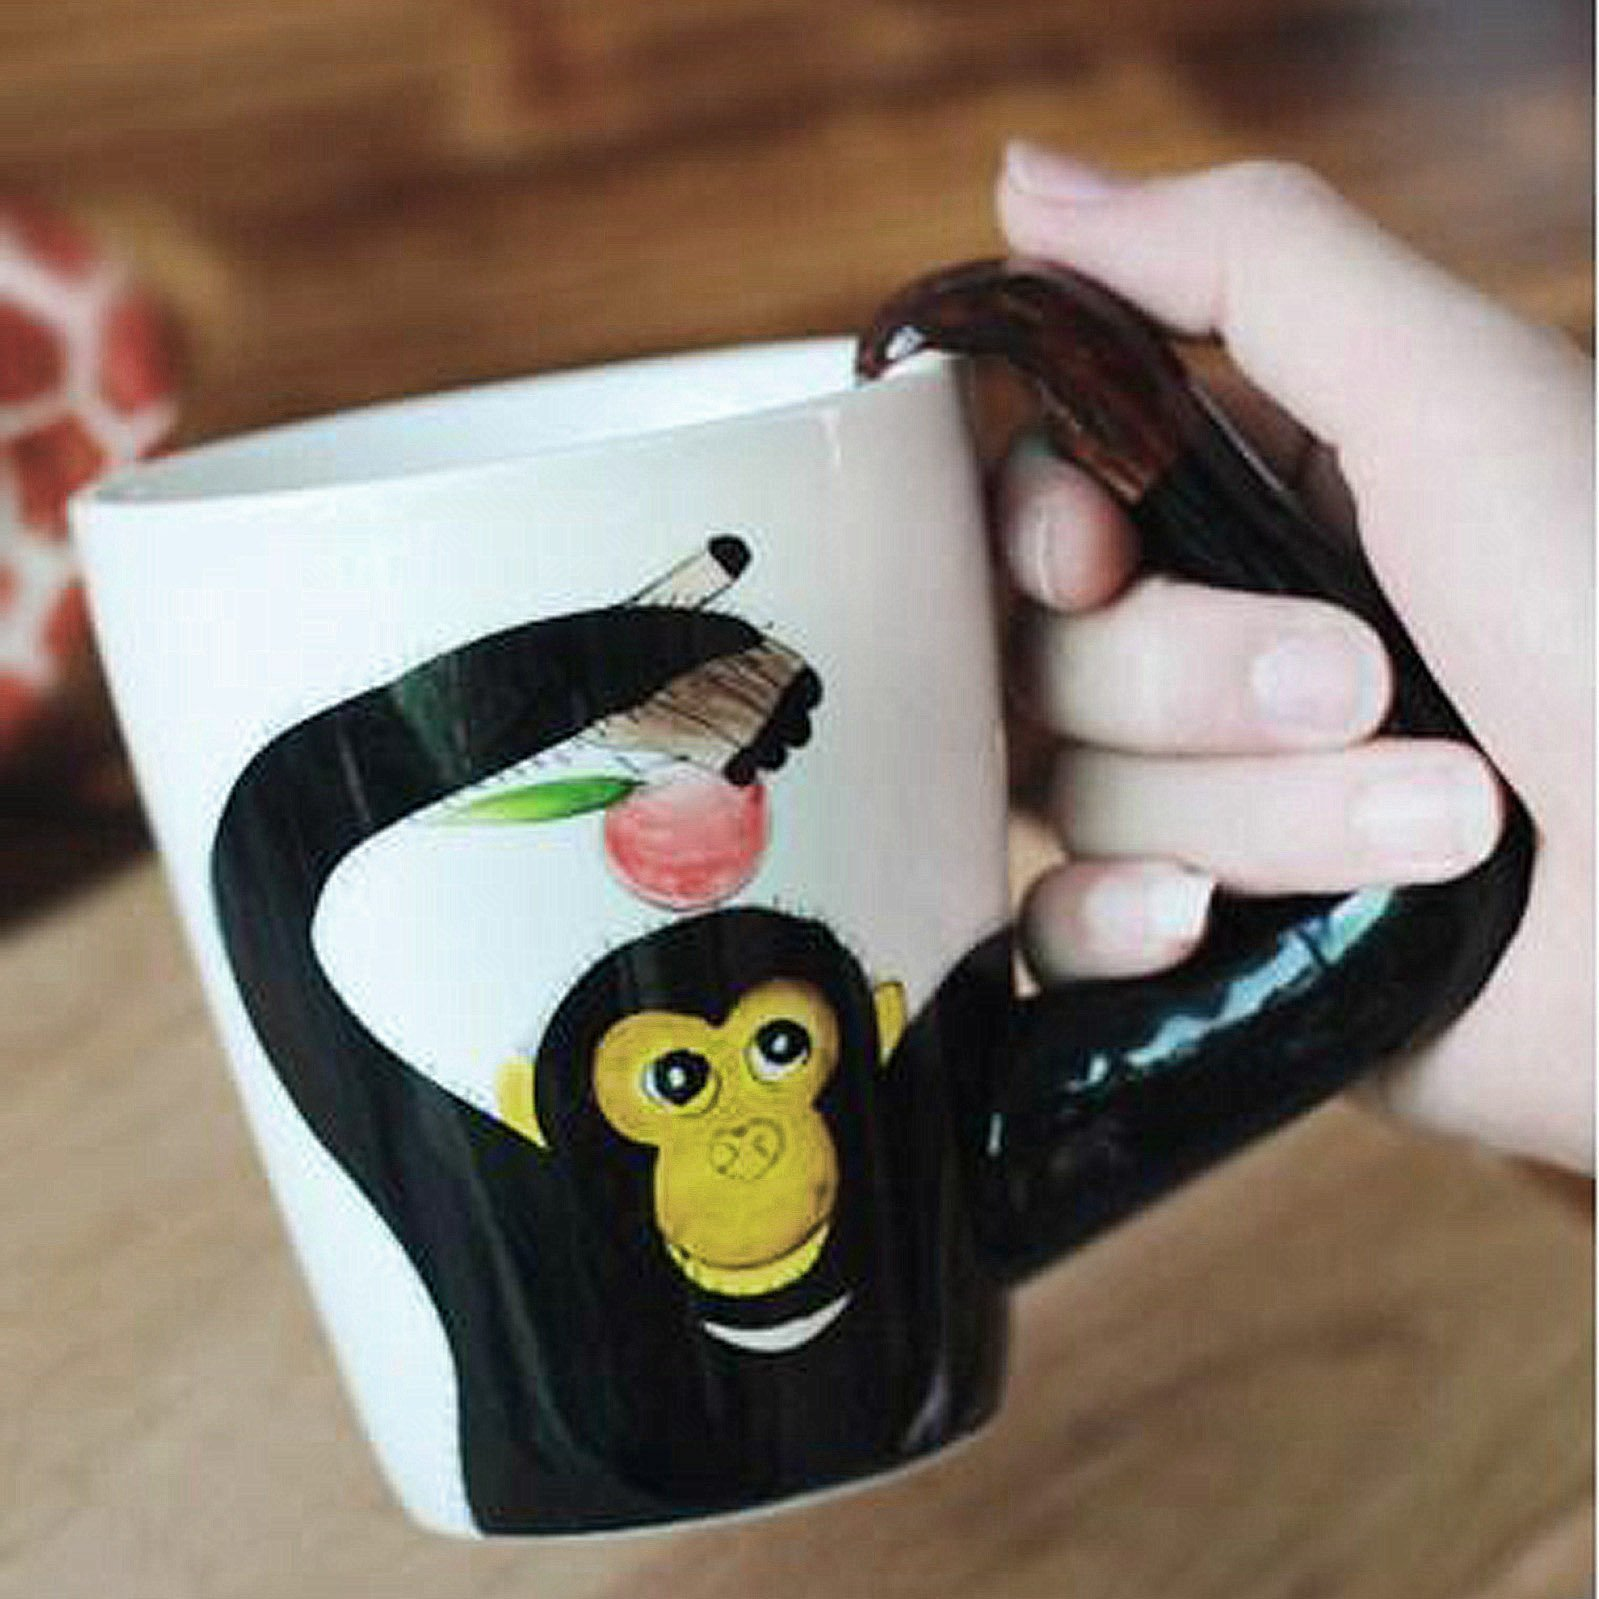 3D Coffee Mug Ceramics Cup With handle Painted Cat Animal (Monkey) by luckyse (Image #4)